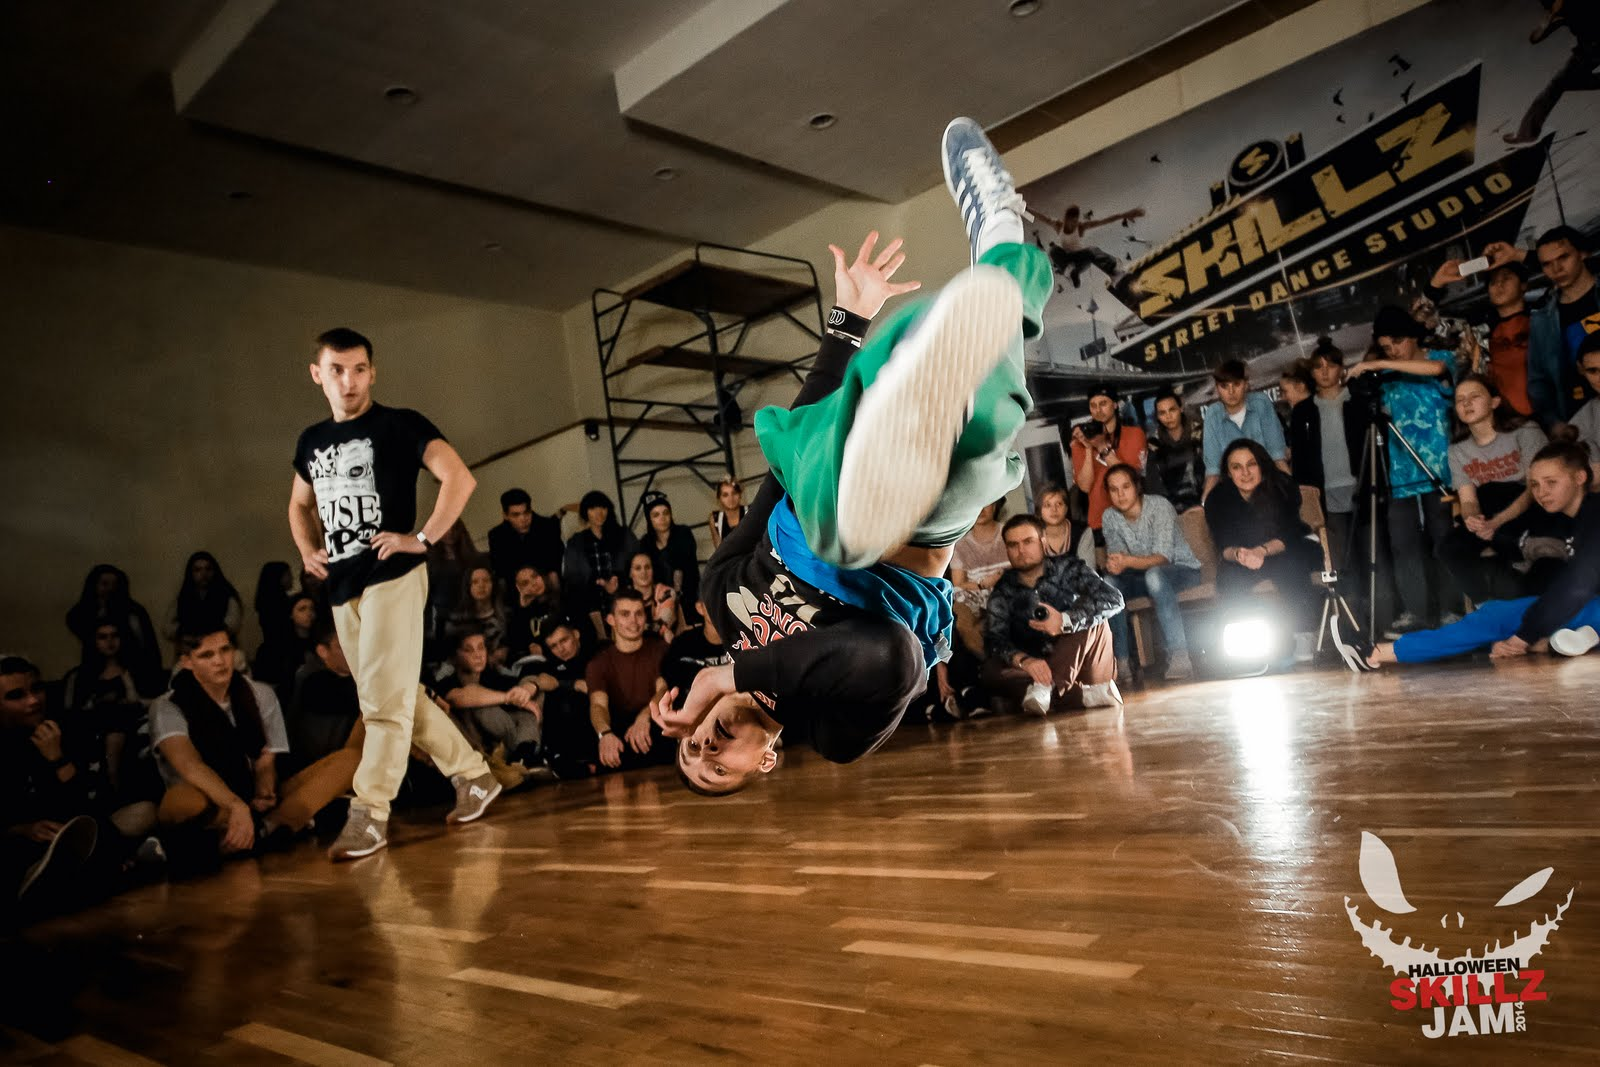 SKILLZ Halloween Jam Battles - a_MG_6231.jpg